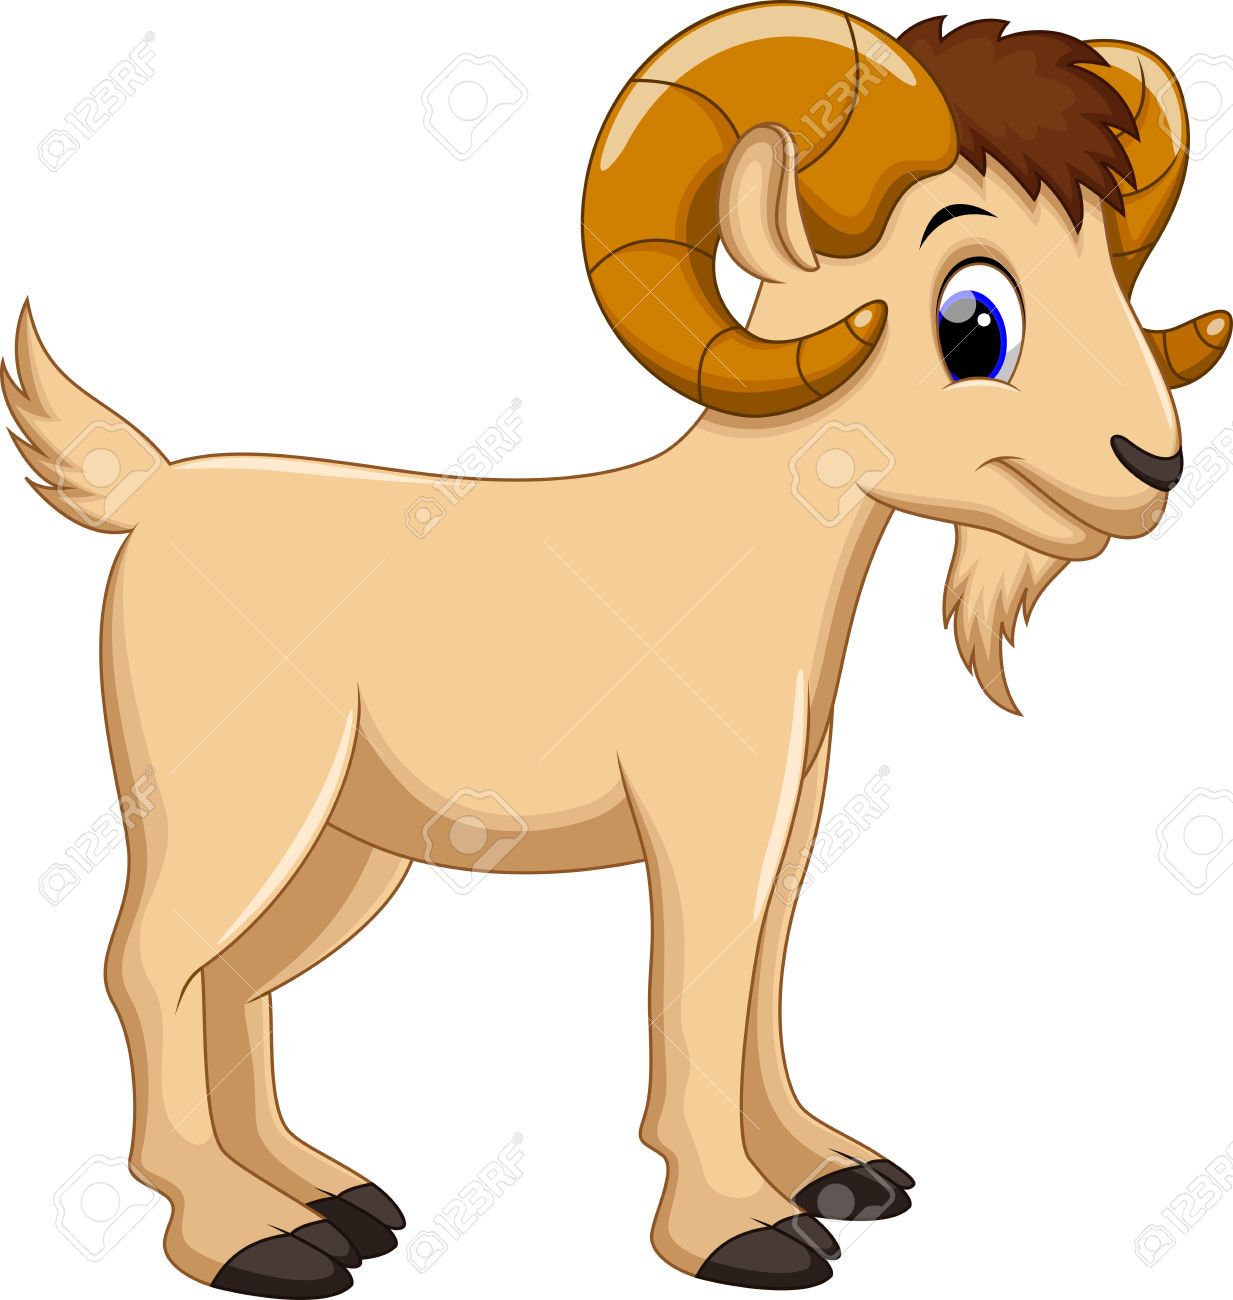 Goat clipart 20 free Cliparts | Download images on ...